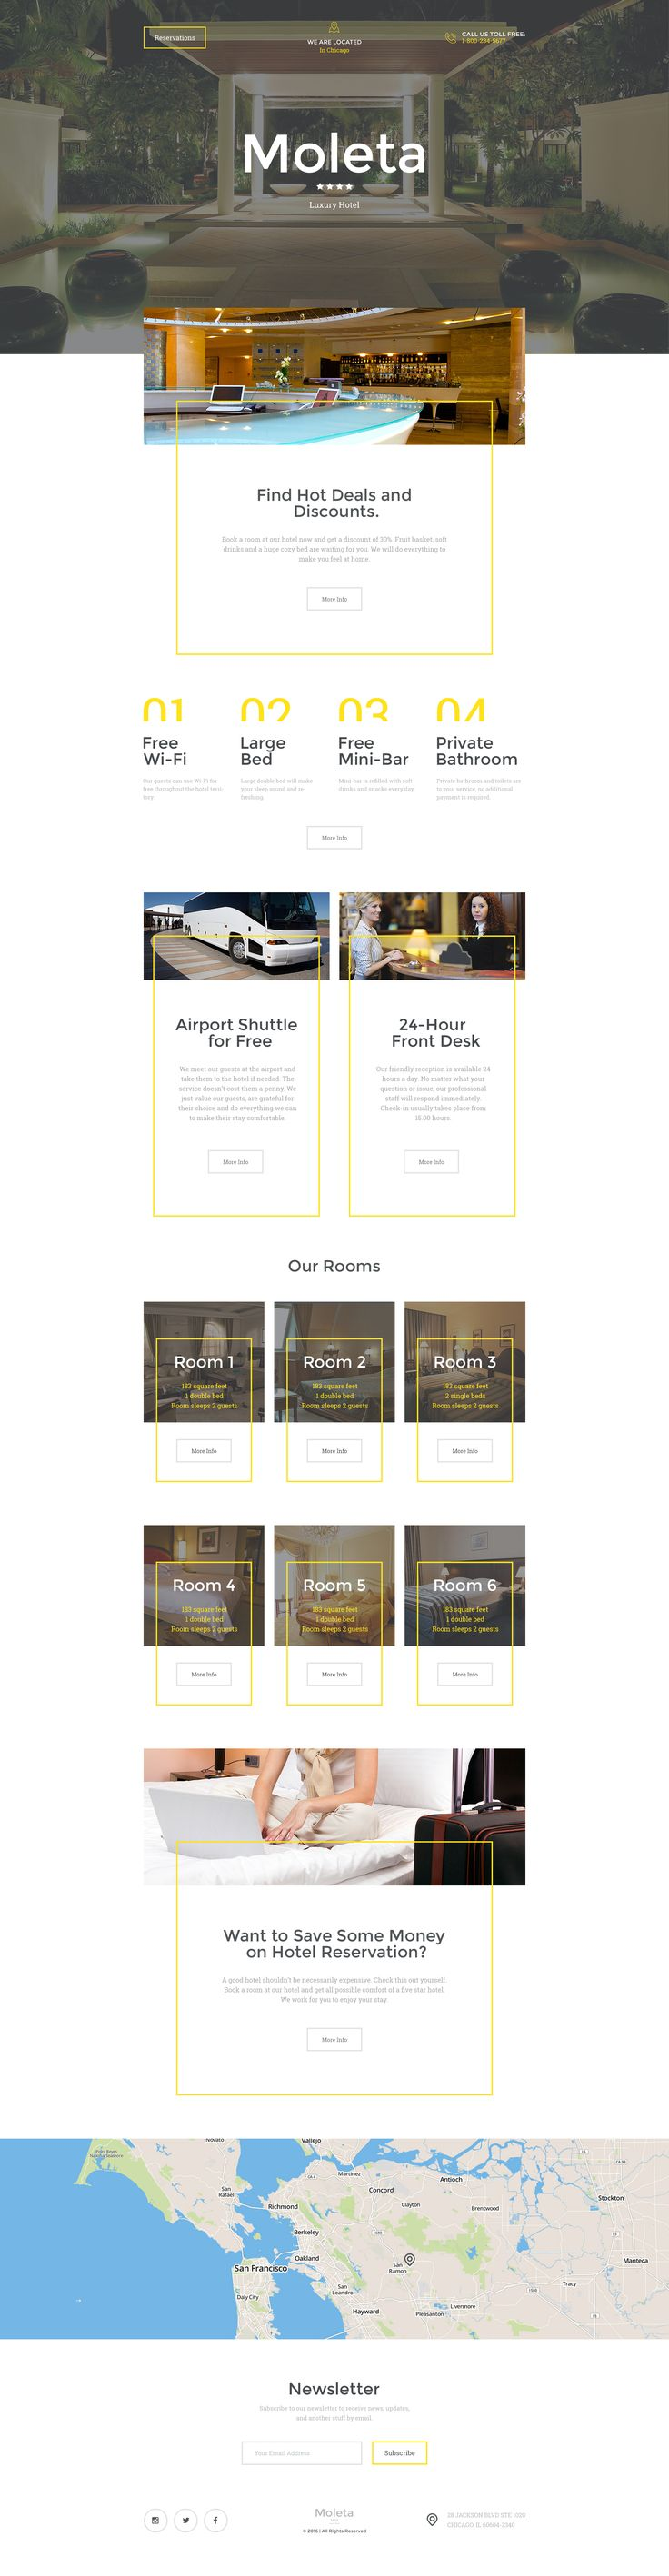 Hotels Responsive Landing Page Template #58247 http://www.templatemonster.com/landing-page-template/hotels-responsive-landing-page-template-58247.html